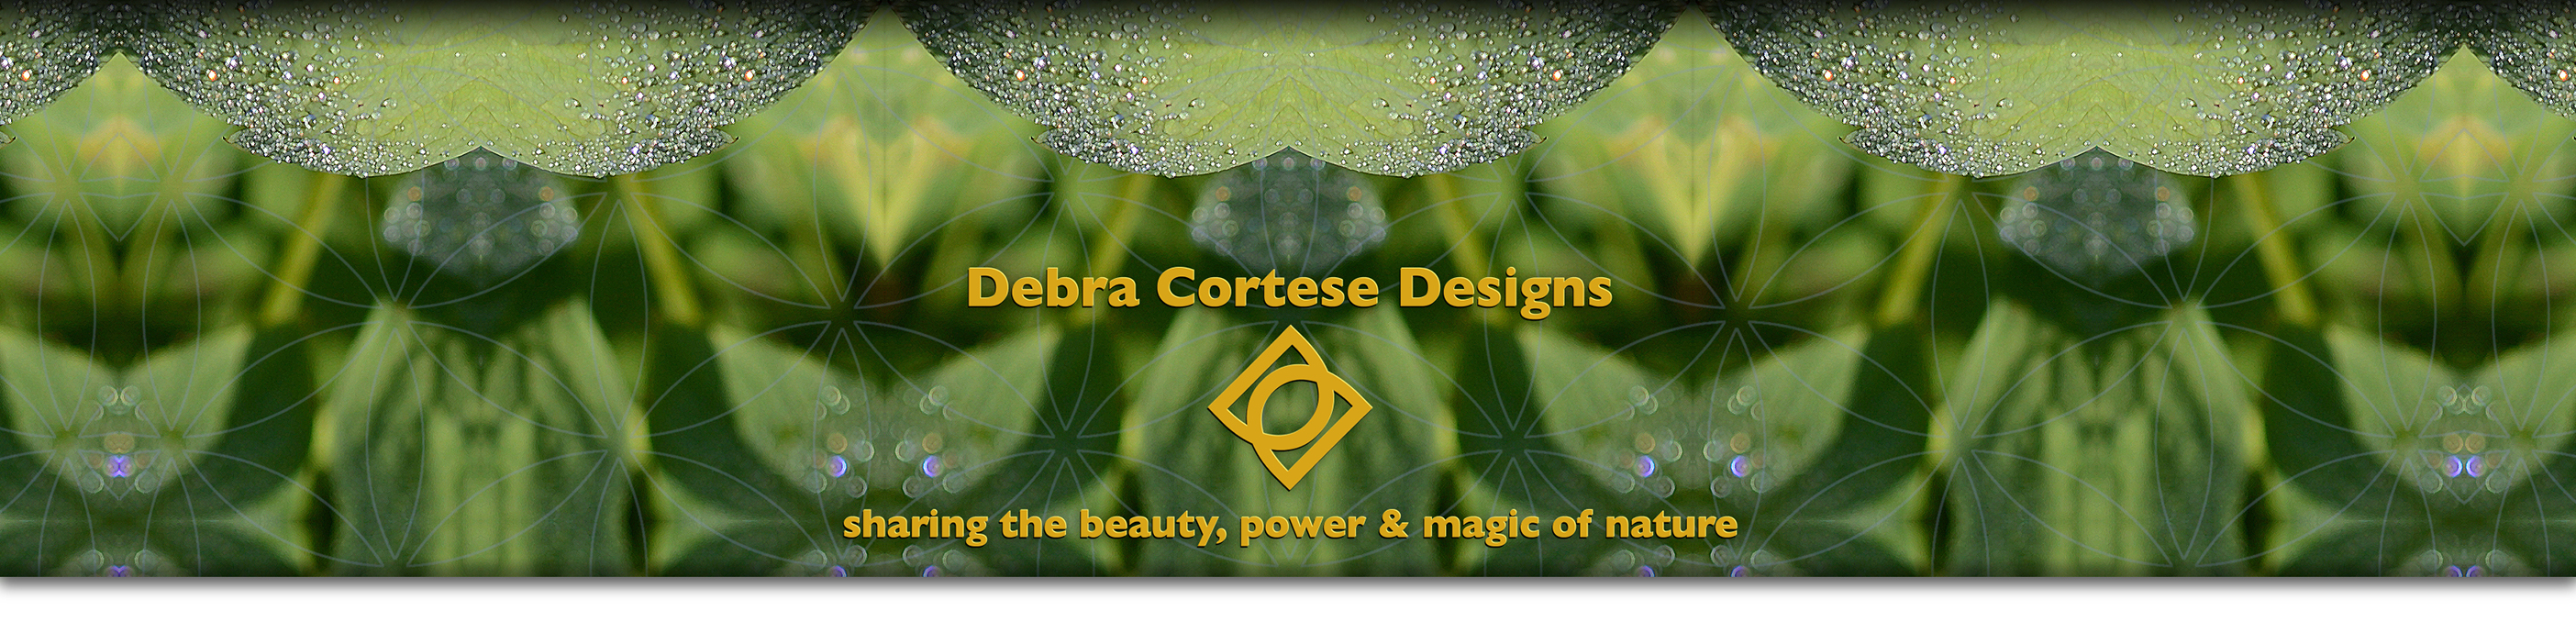 Debra Cortese Designs Sharing the beauty, power and magic of nature's energy